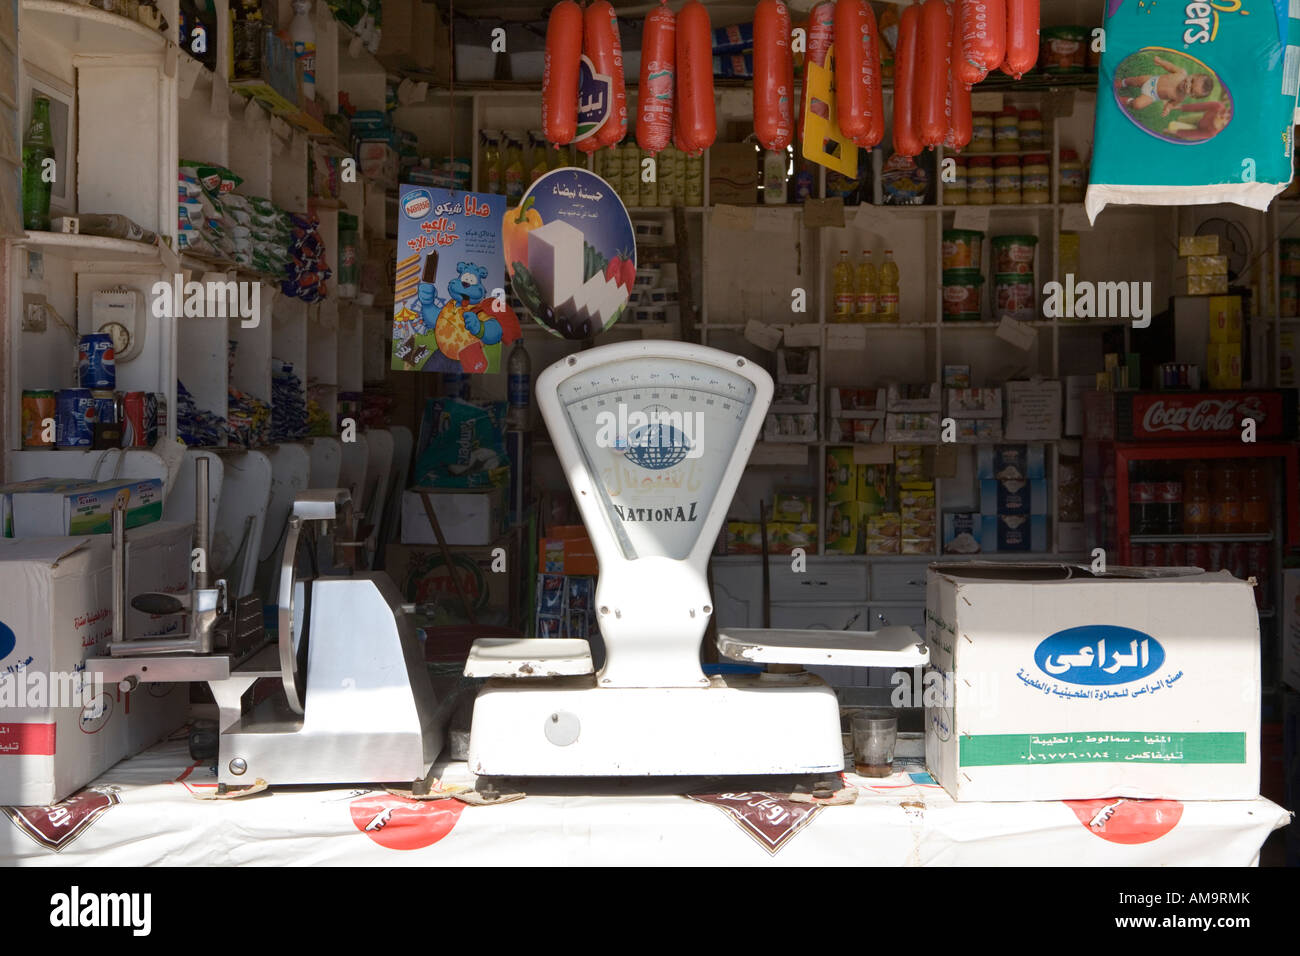 Shop counter with scales and goods on sale  in small town of Dakhla Oasis, Egypt North Africa - Stock Image